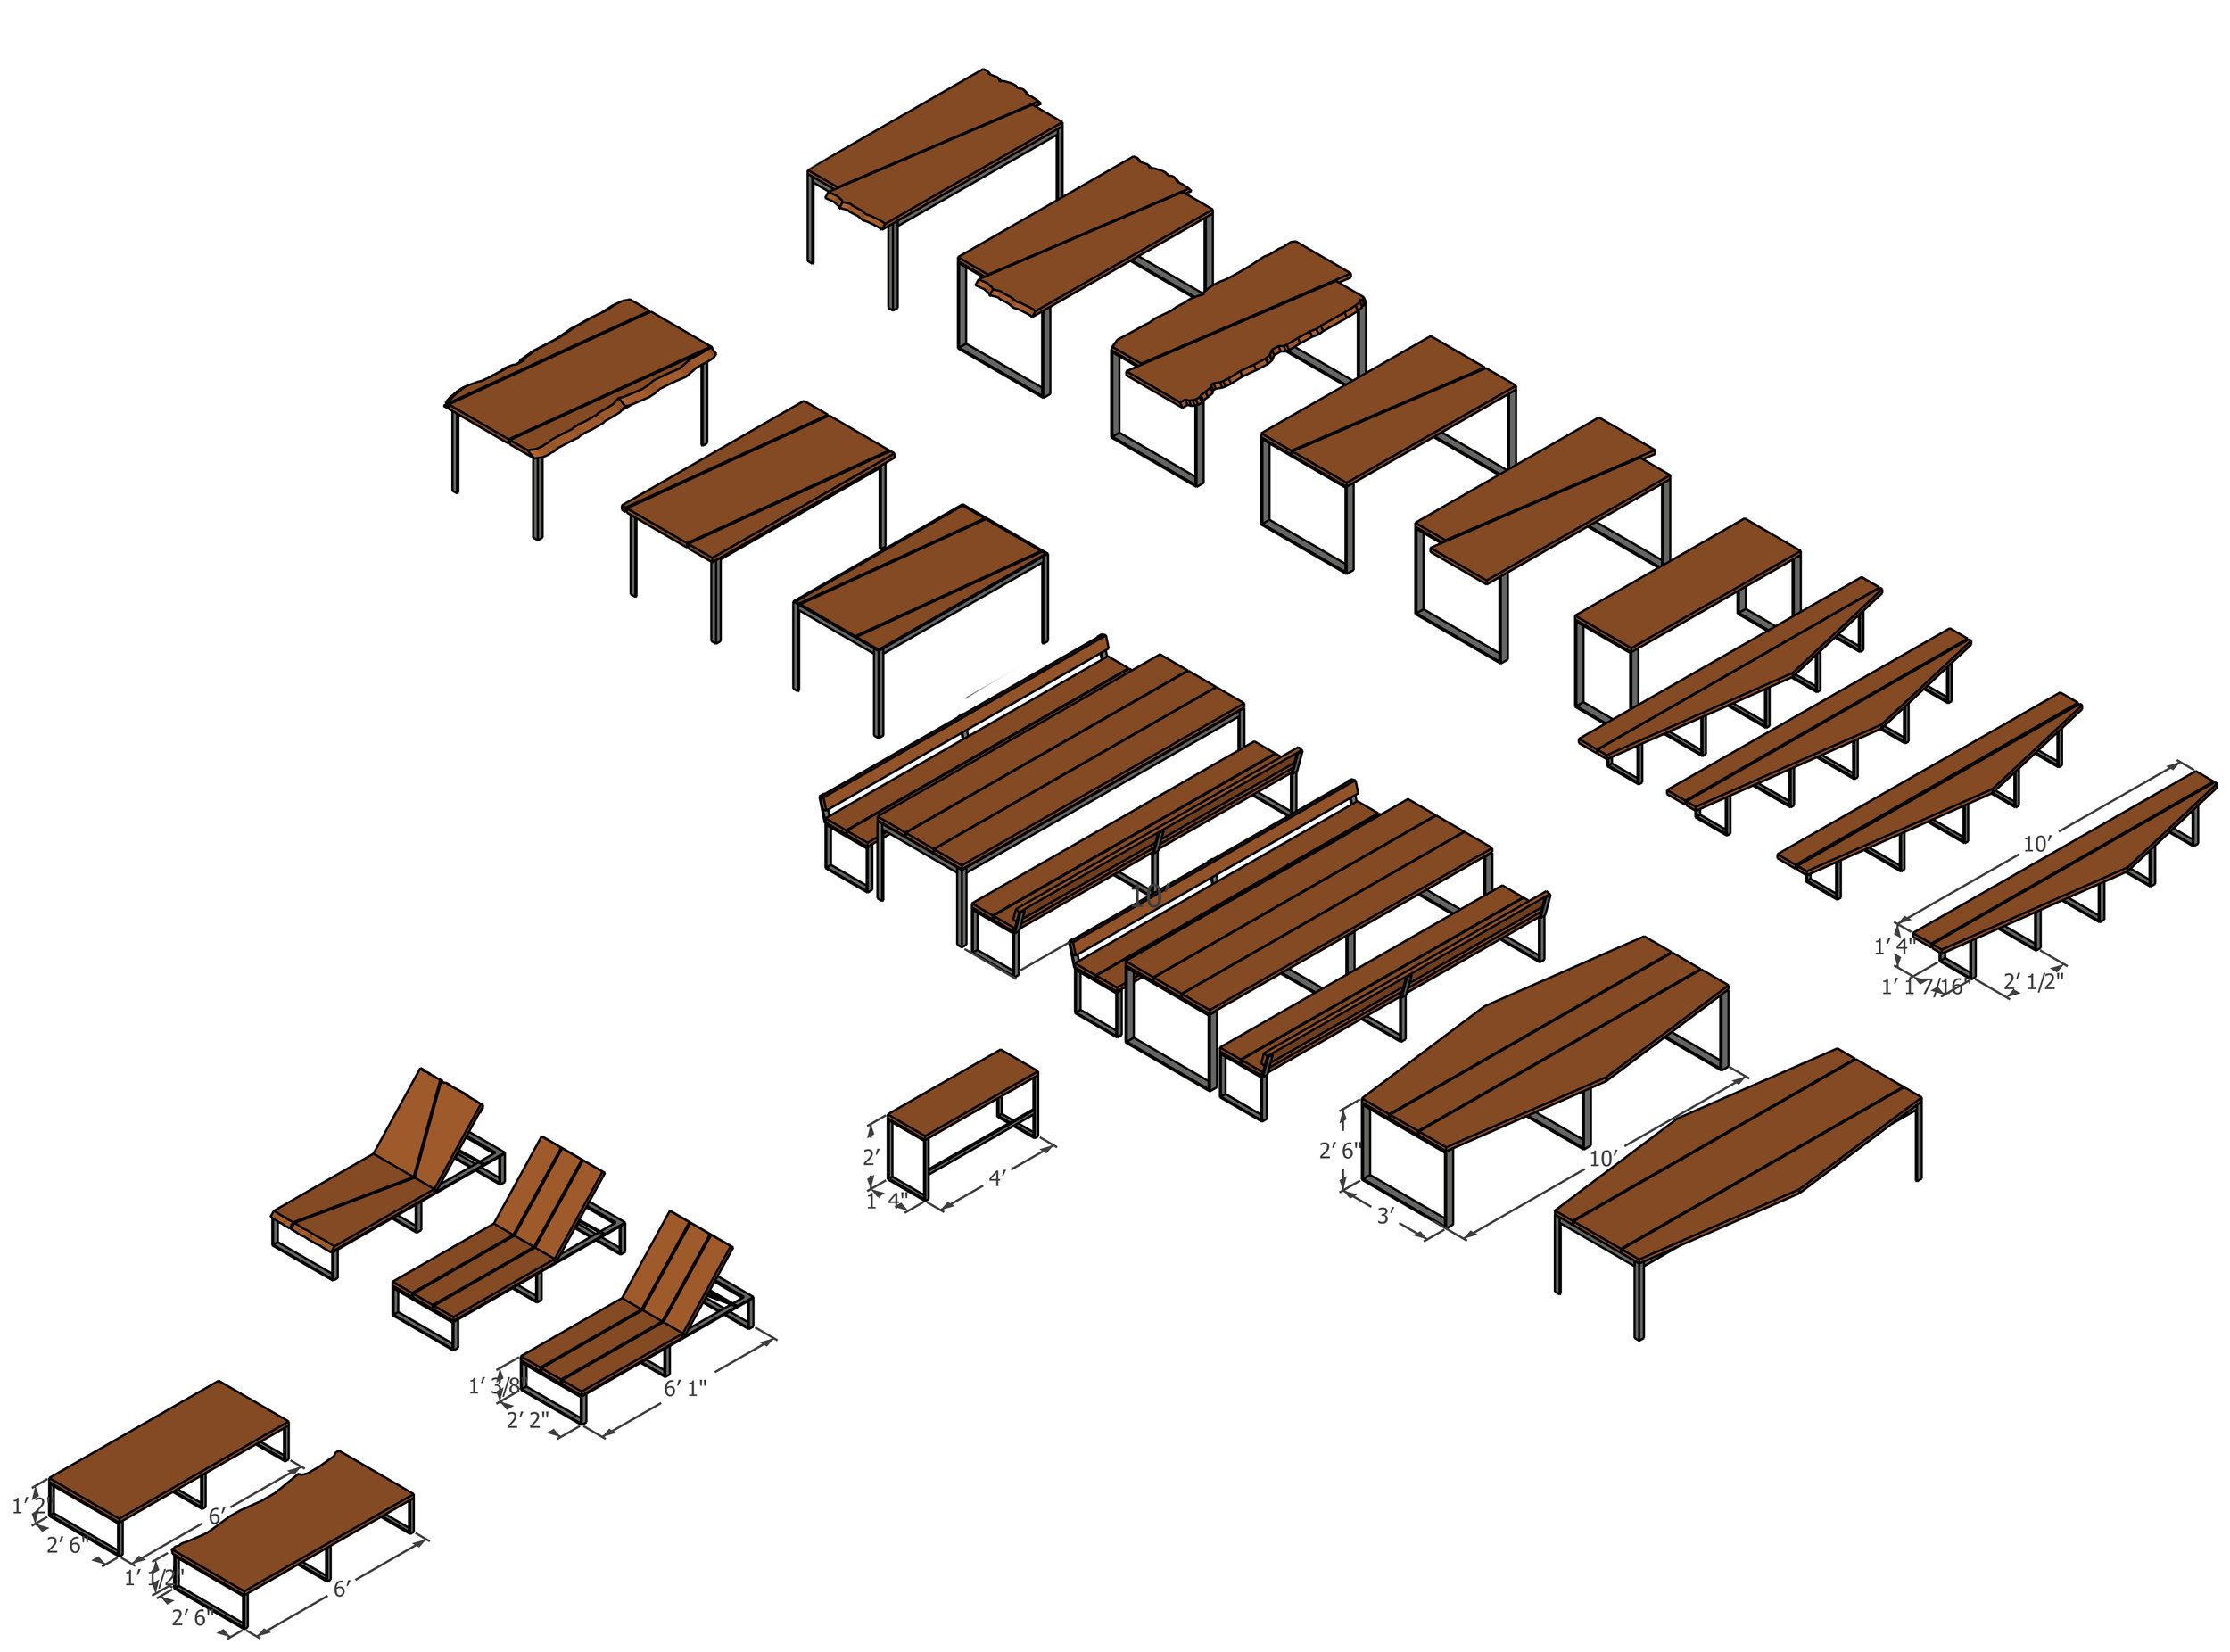 401 furniture options.jpg